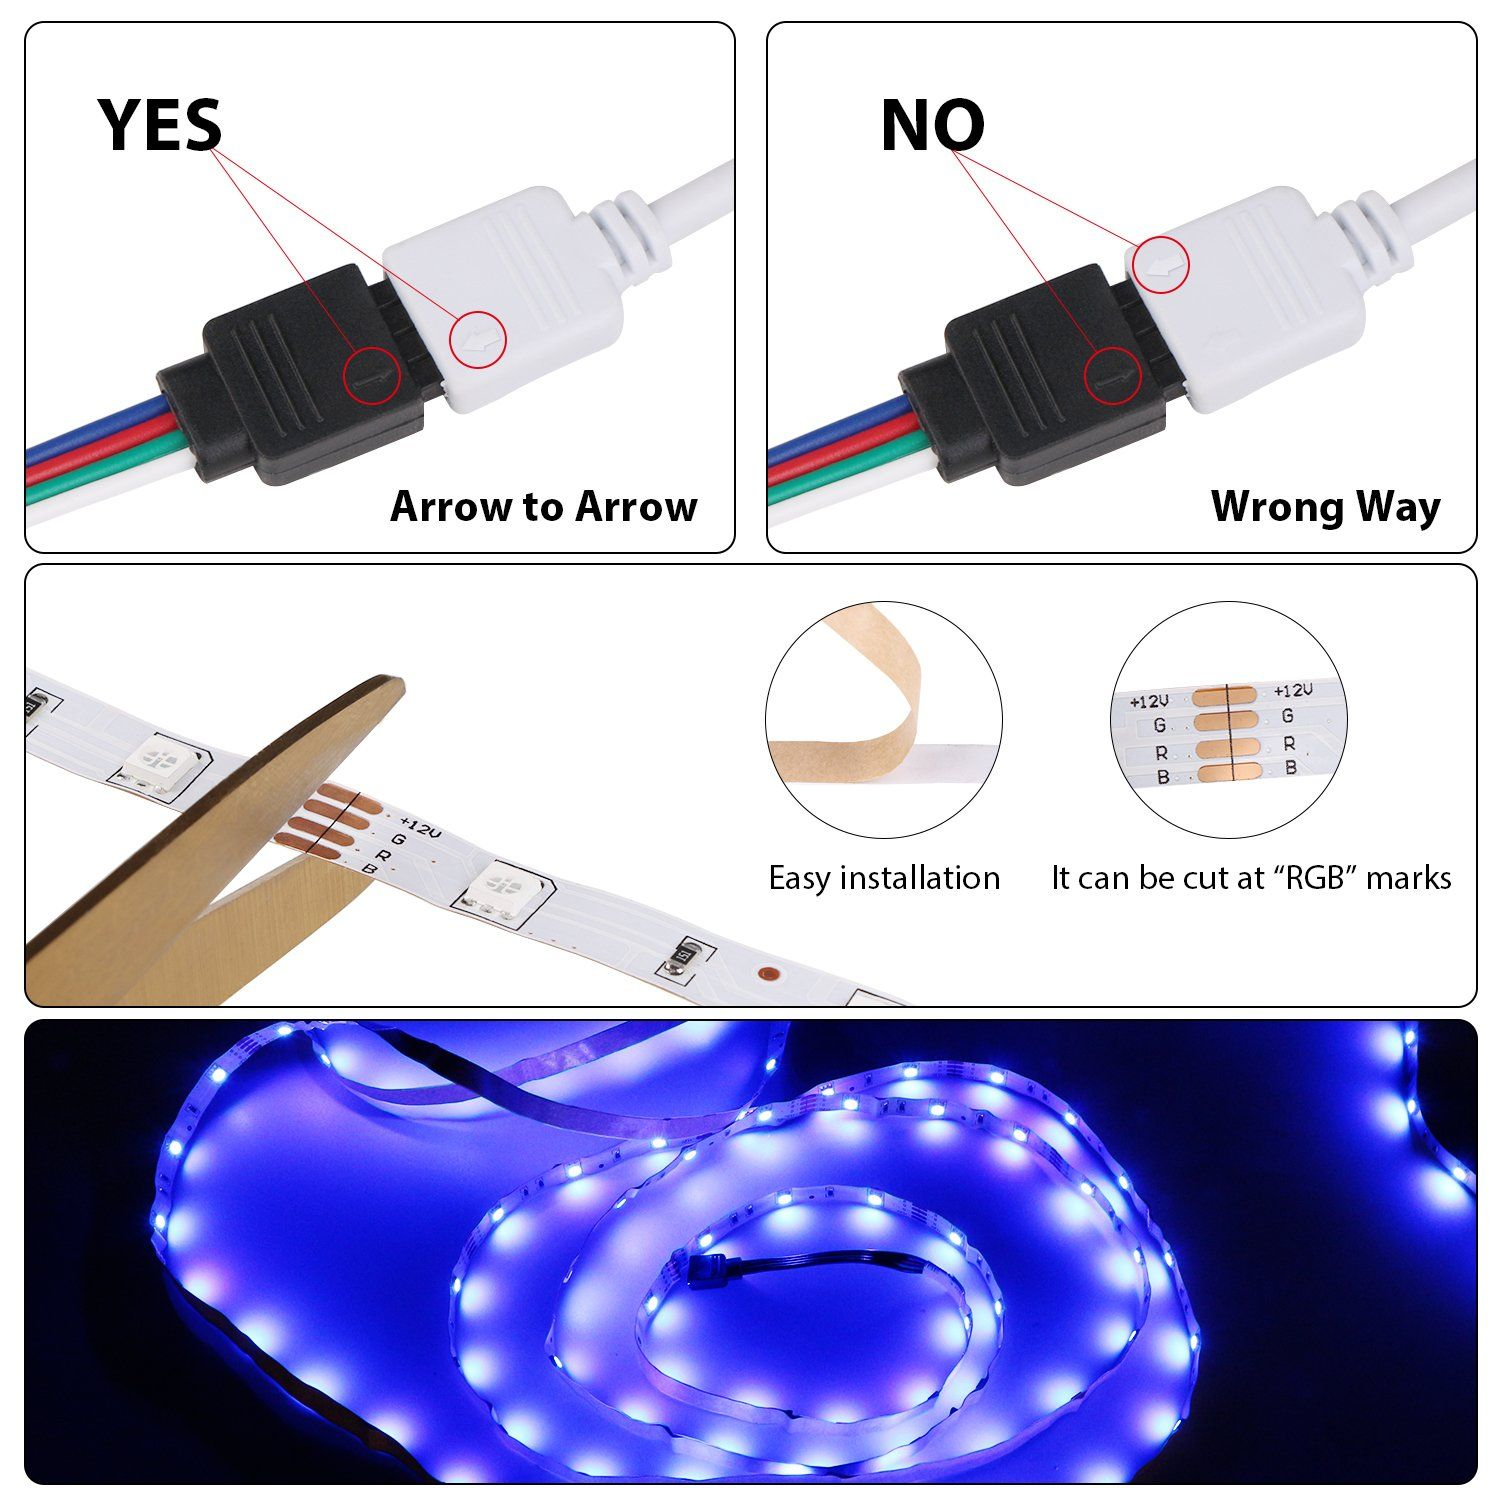 Relohas Led Strip Light16 4ft Waterproof Led Flexible Light 150 Units Smd 5050 Leds 12v Dc Waterproof Led Christmas Decorations Handmade Christmas Decorations